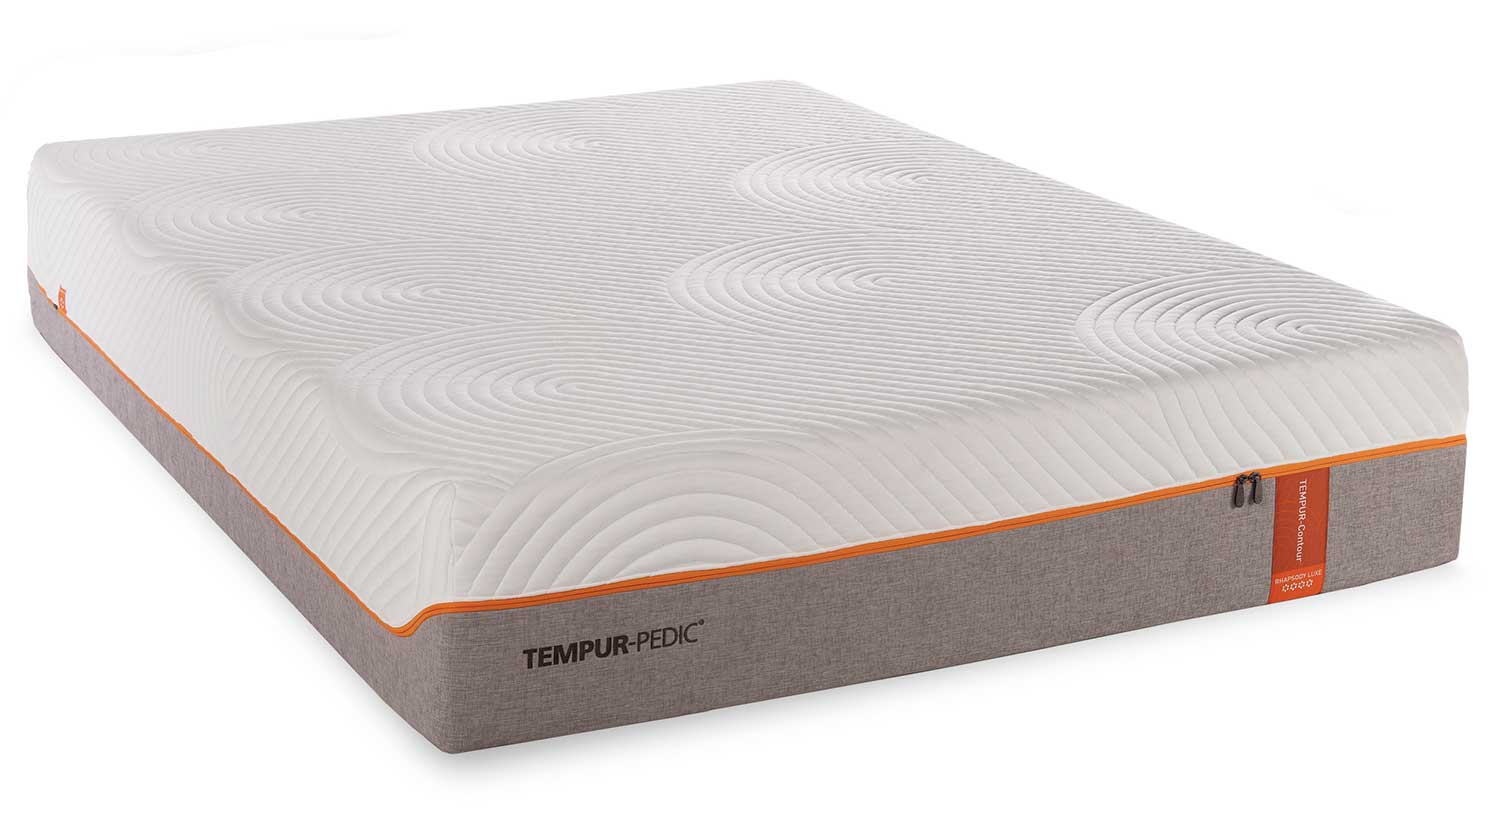 Top 7 Tempurpedic Mattress Models — Best Reviews for Your Choice (2020)